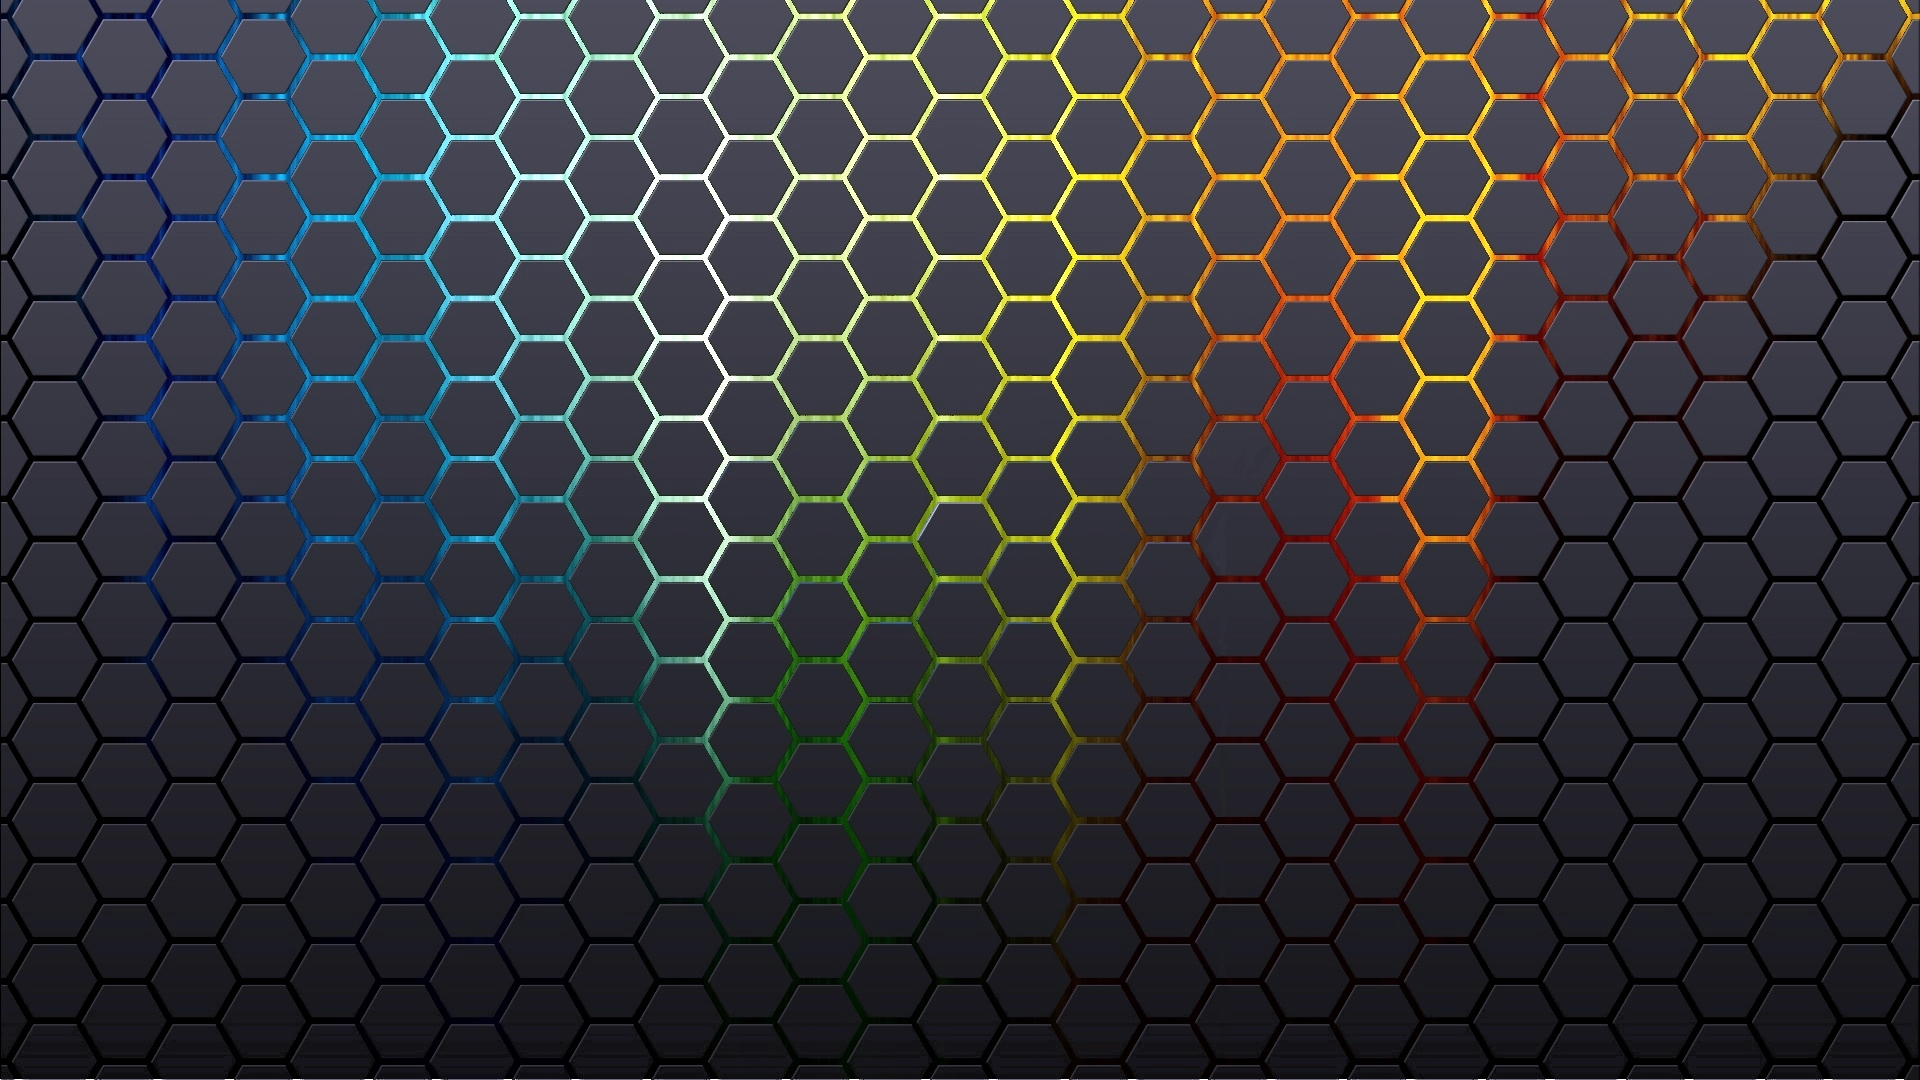 Abstract Patterns Hexagons Textures Backgrounds Honeycomb